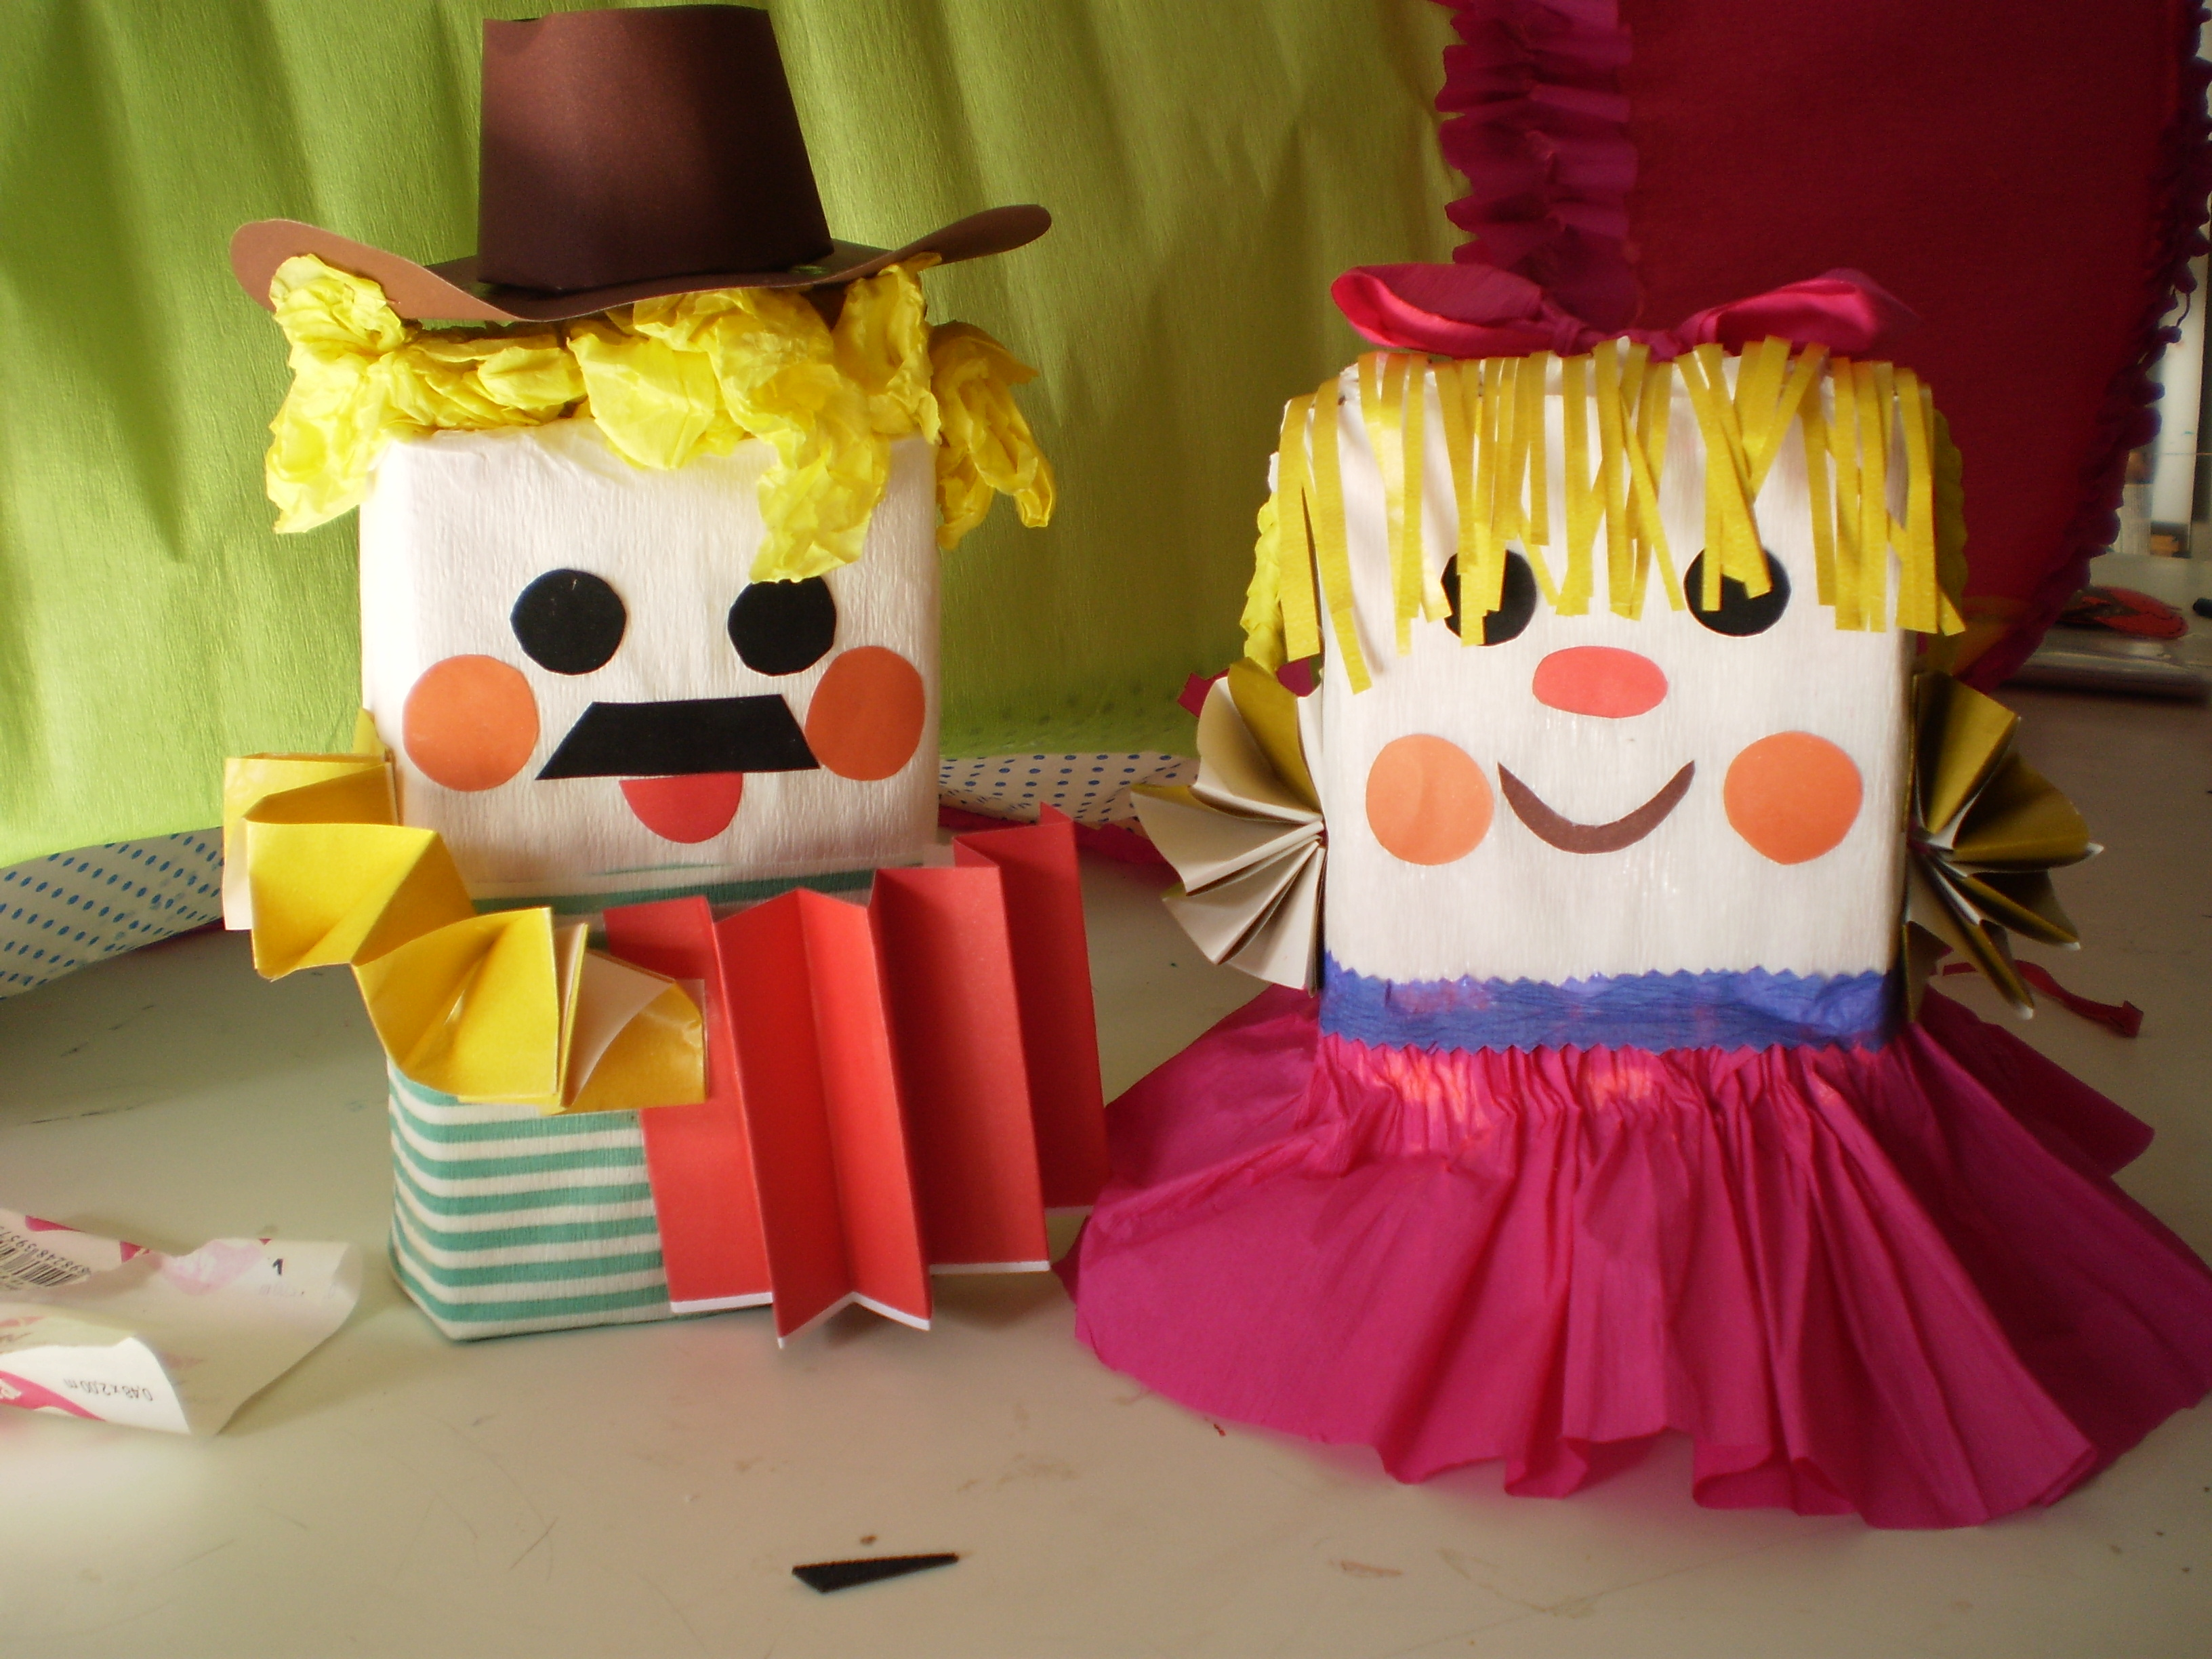 Photo of Milk carton puppet crafts for kids